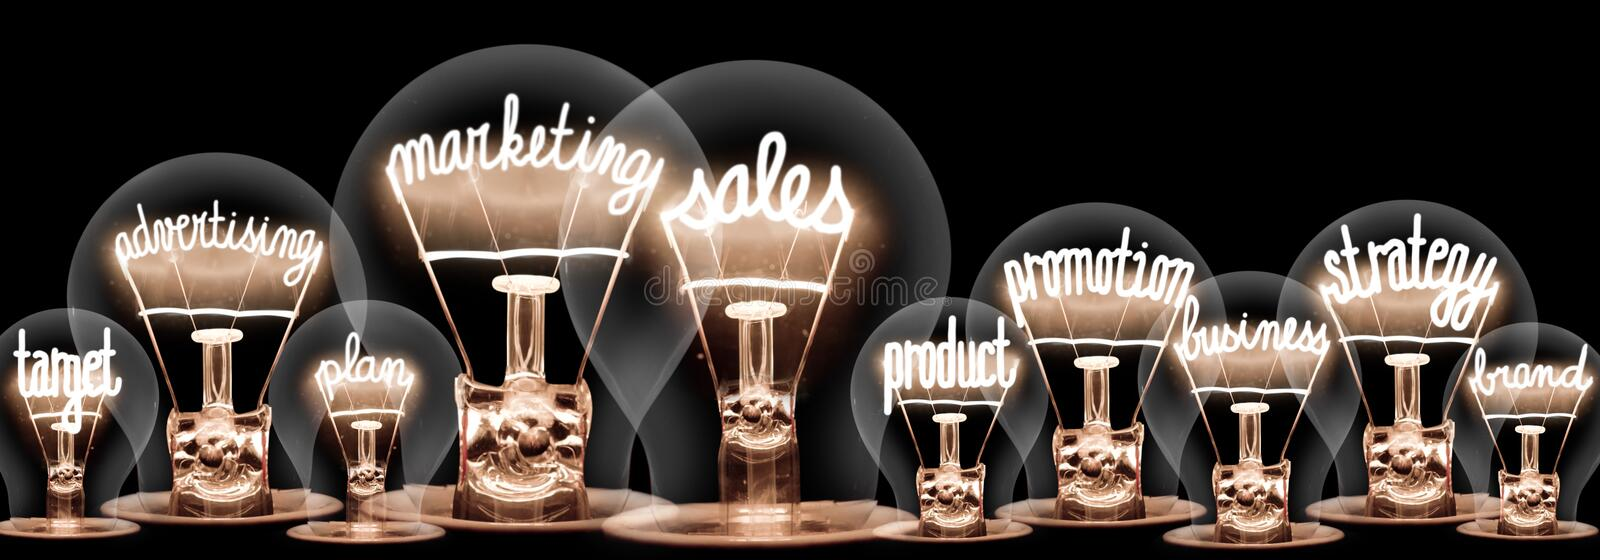 Light Bulbs with Marketing Sales Concept royalty free stock images